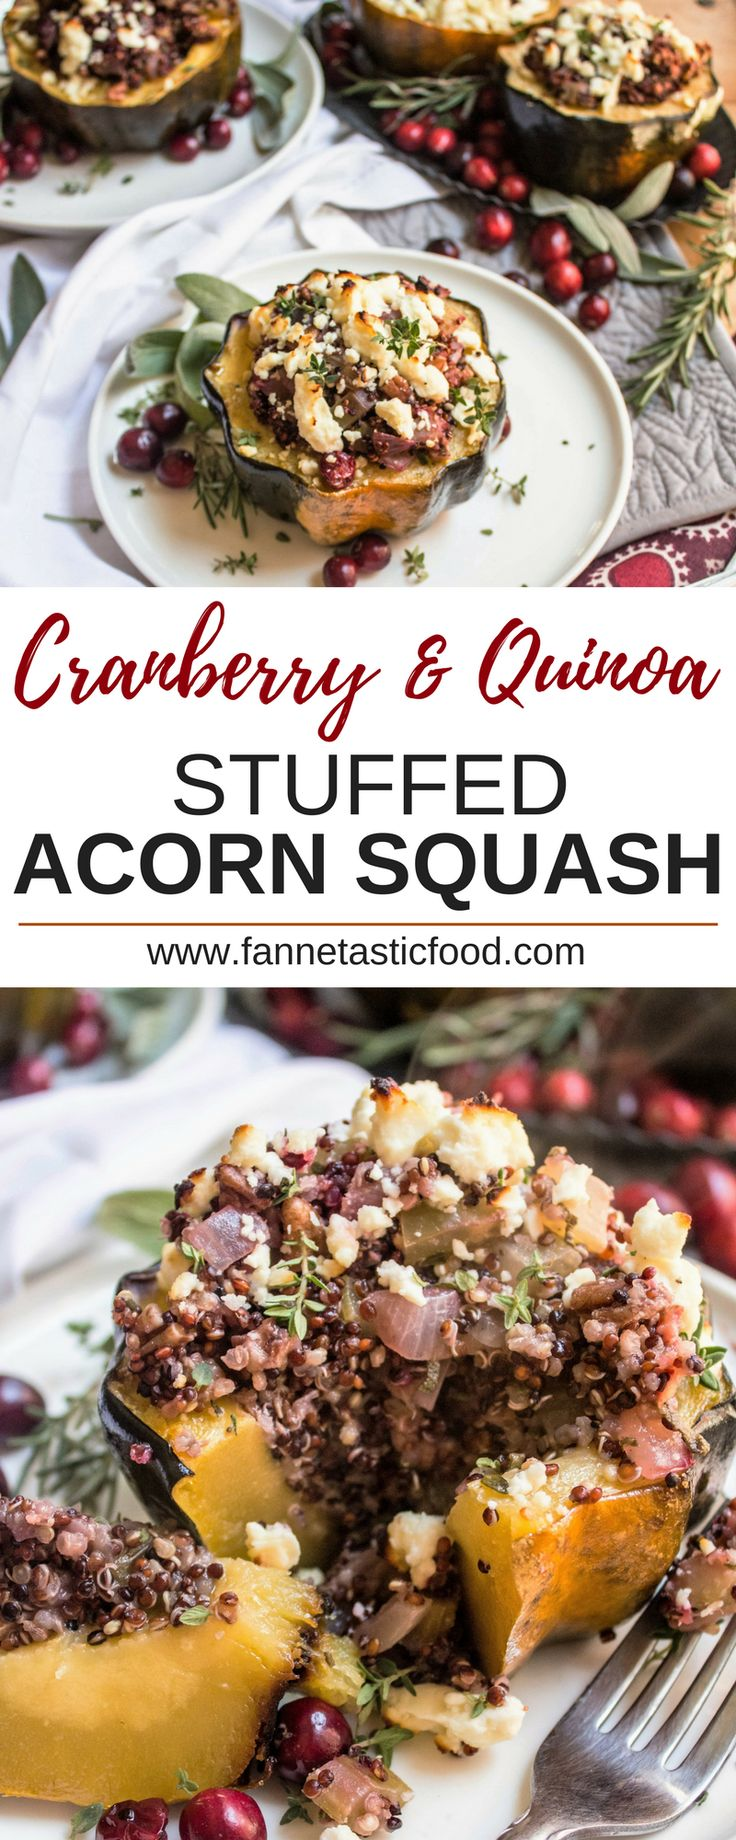 Looking for a unique recipe to add to your Thanksgiving table? This savory Cranberry & Quinoa Stuffed Acorn Squash is hearty and packed with fall flavor! It's great as a vegetarian main dish for Thanksgiving or any other night - plus it's gluten free and easily vegan.  | healthy thanksgiving recipes | vegetarian thanksgiving recipes | easy dinner ideas | vegetarian dinner ideas |